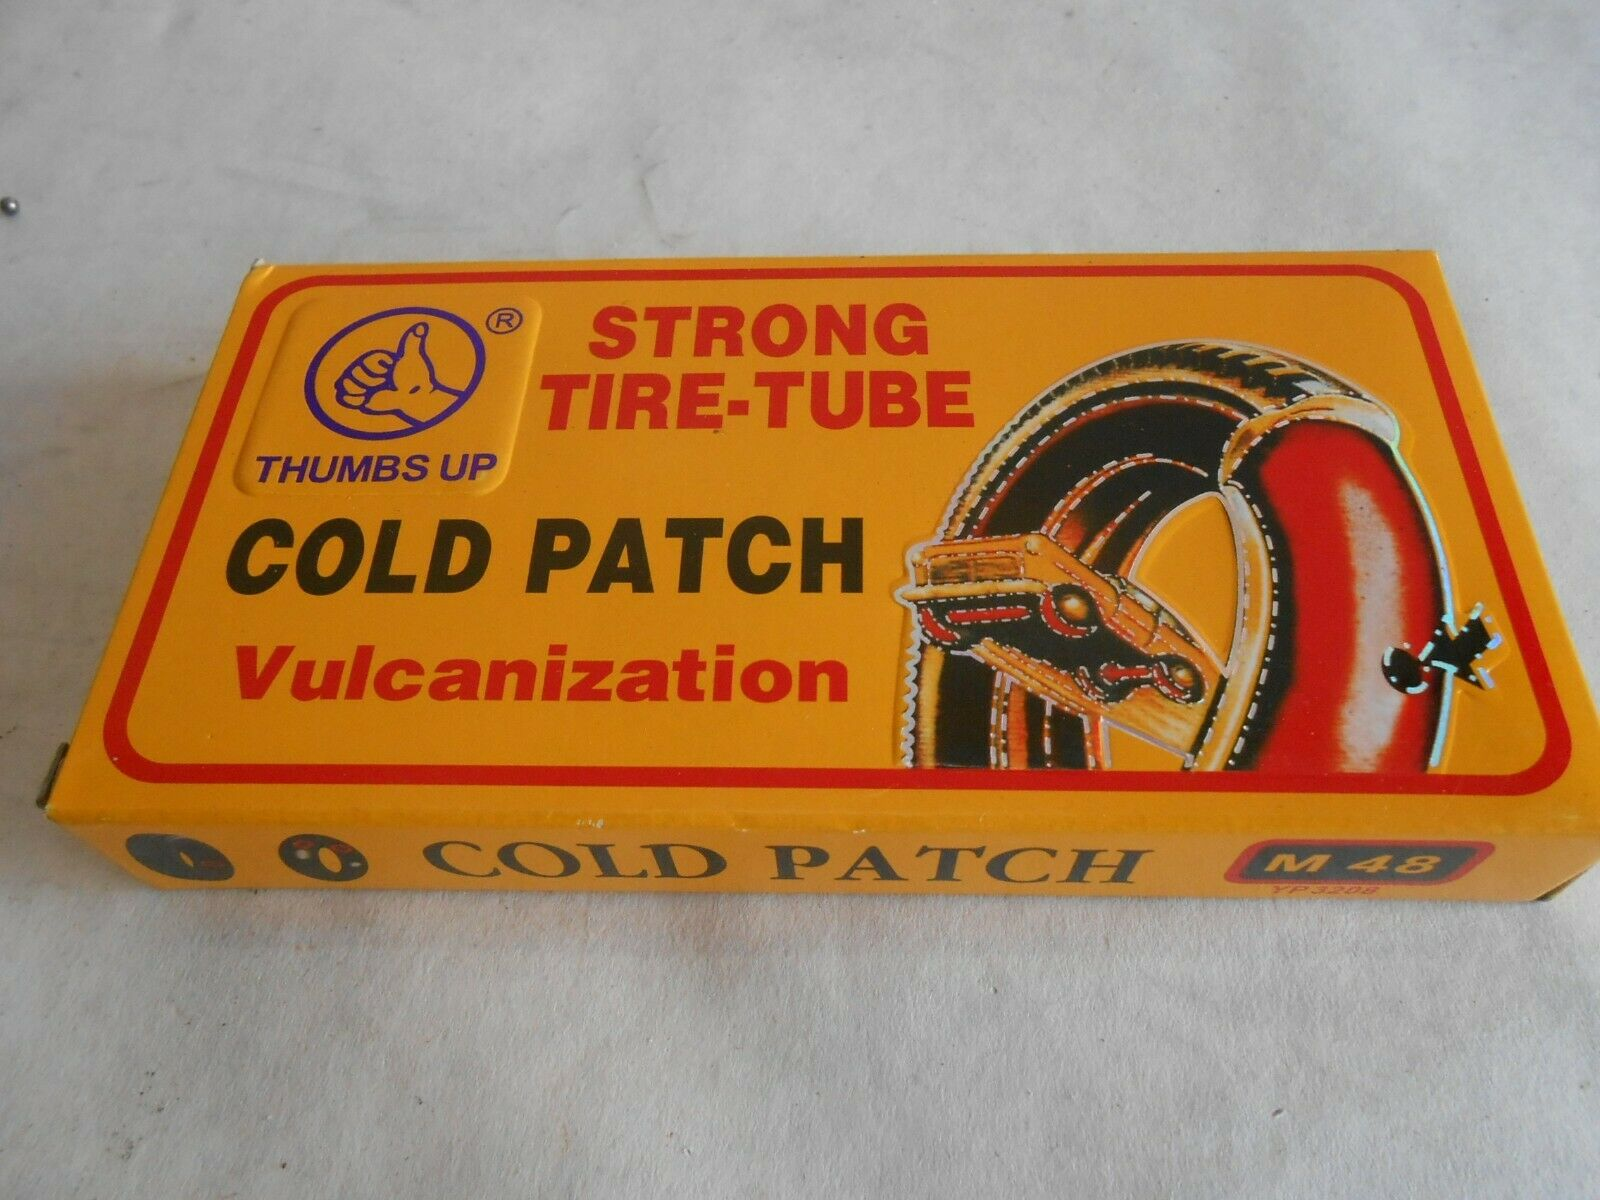 New Motorcycle Bike Off Road Puncture Repair Kit 48 Patches Rubber Cement